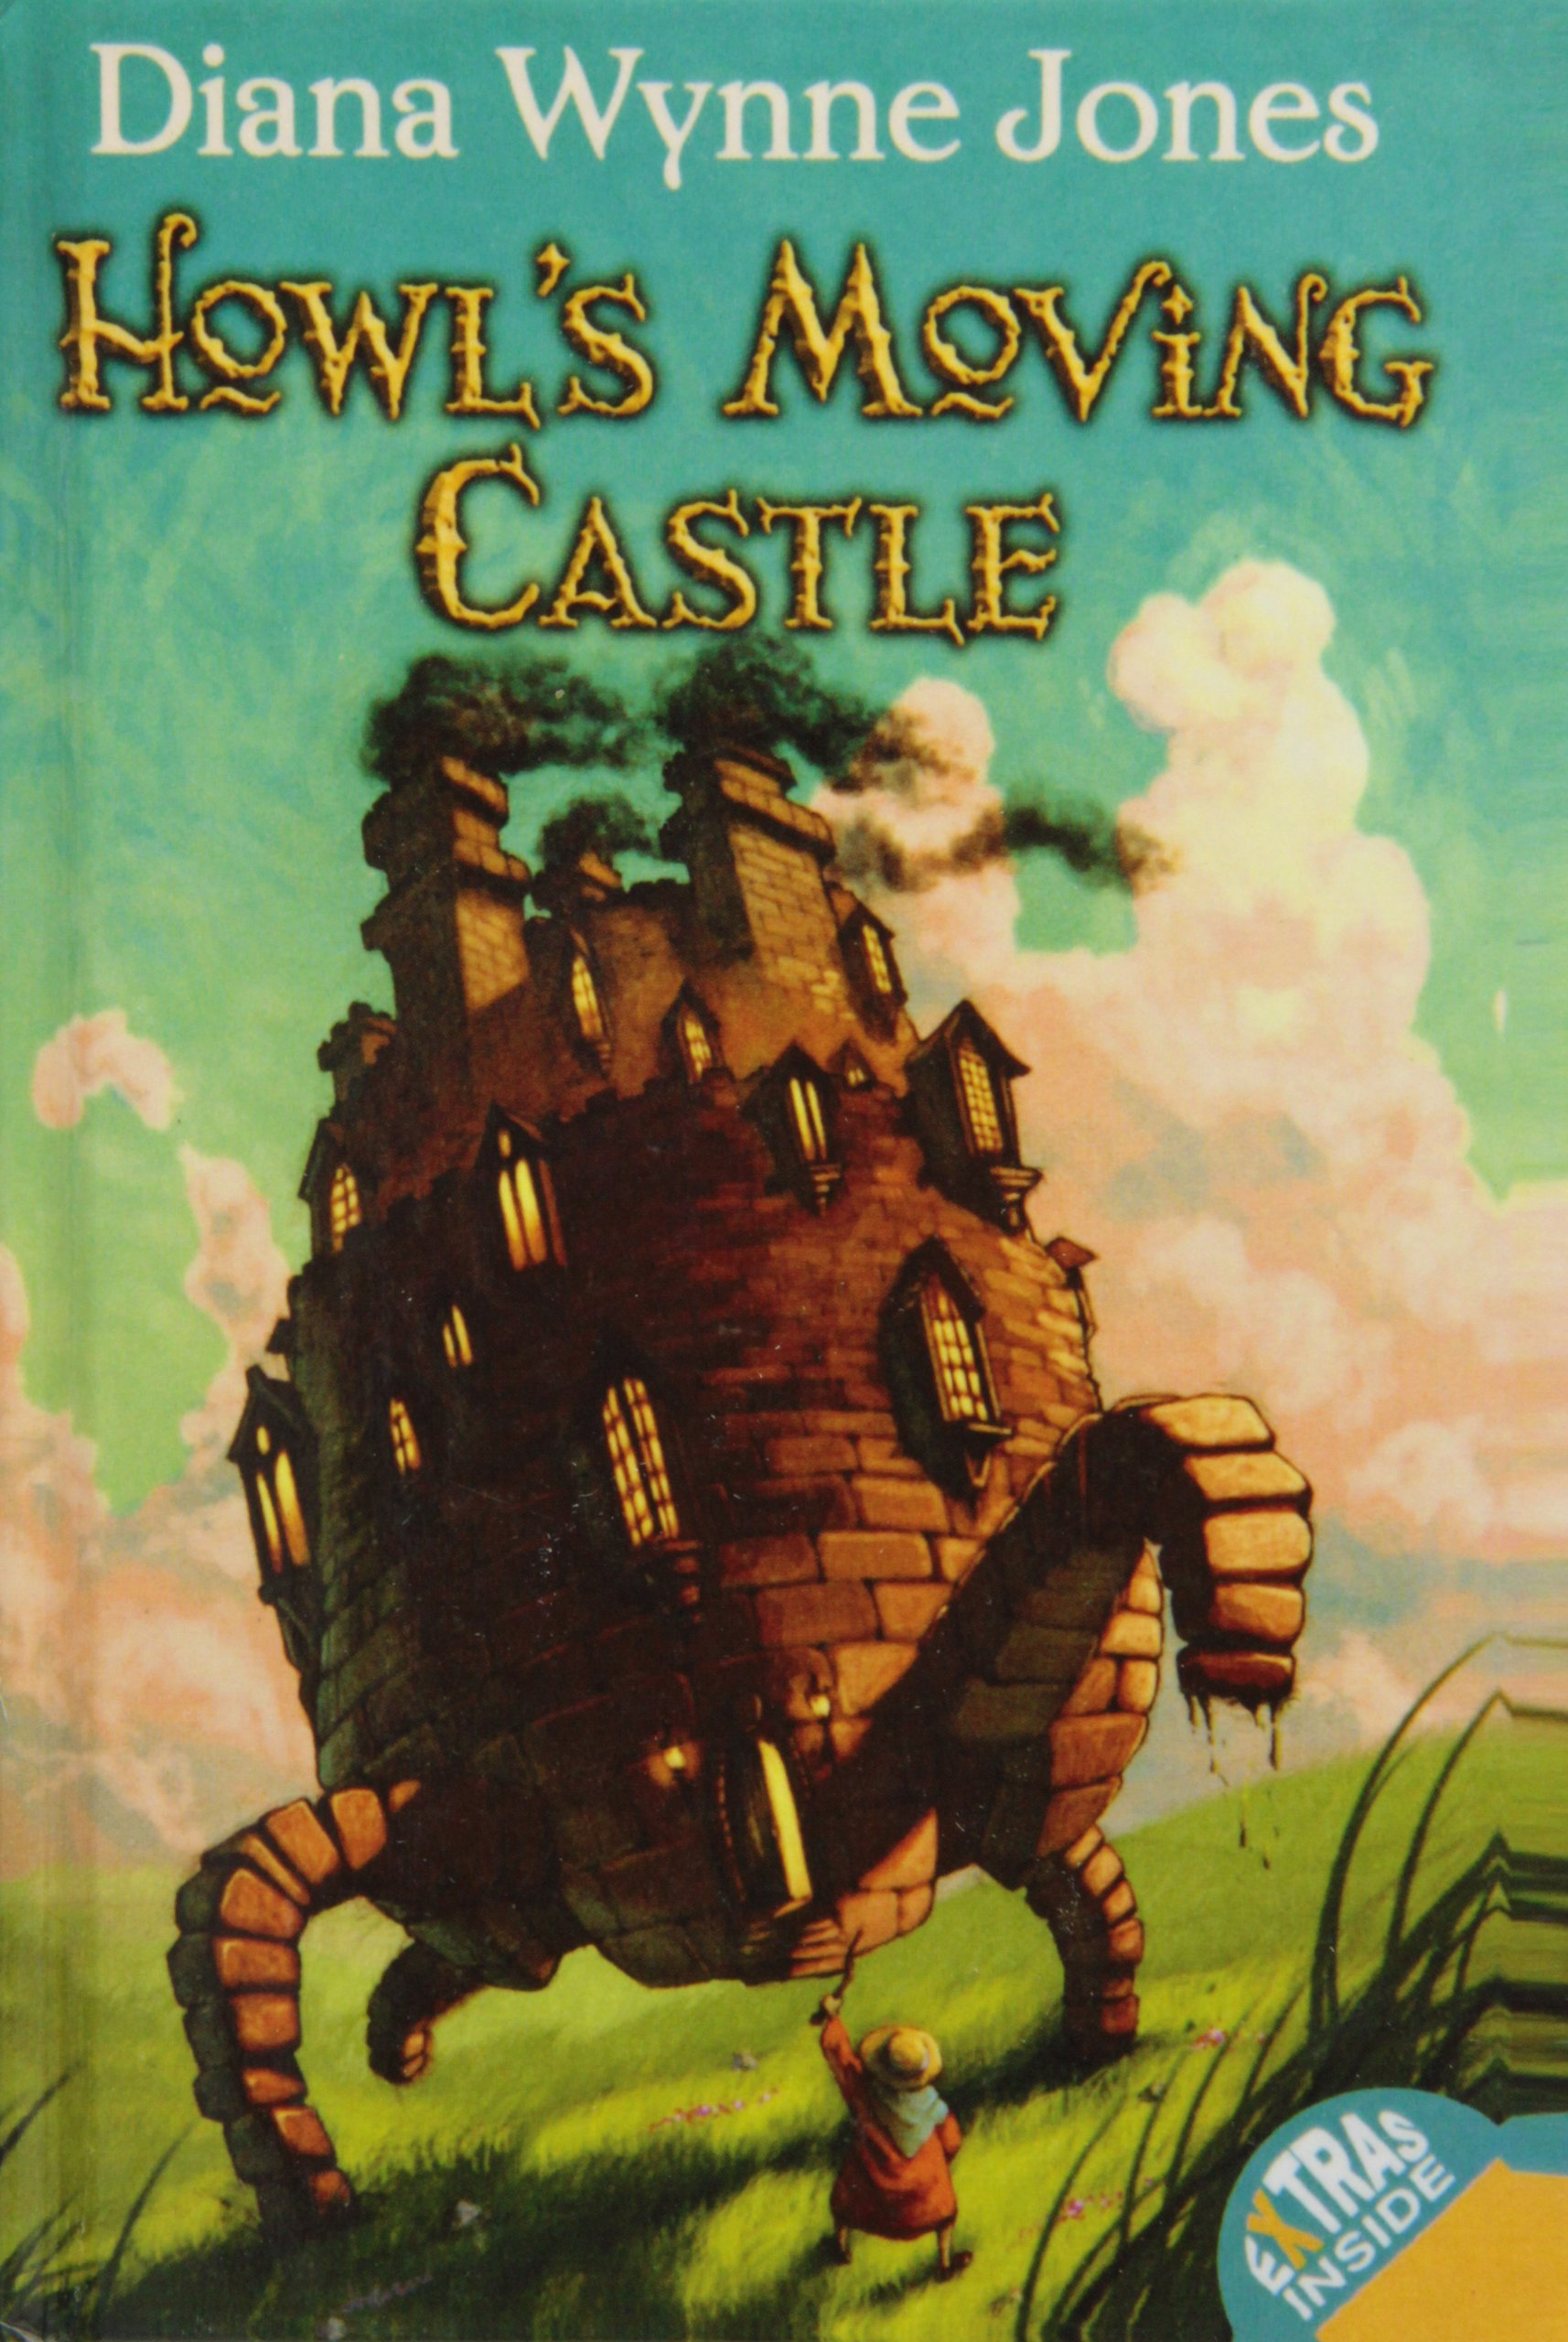 Image result for howl's moving castle diana wynne jones